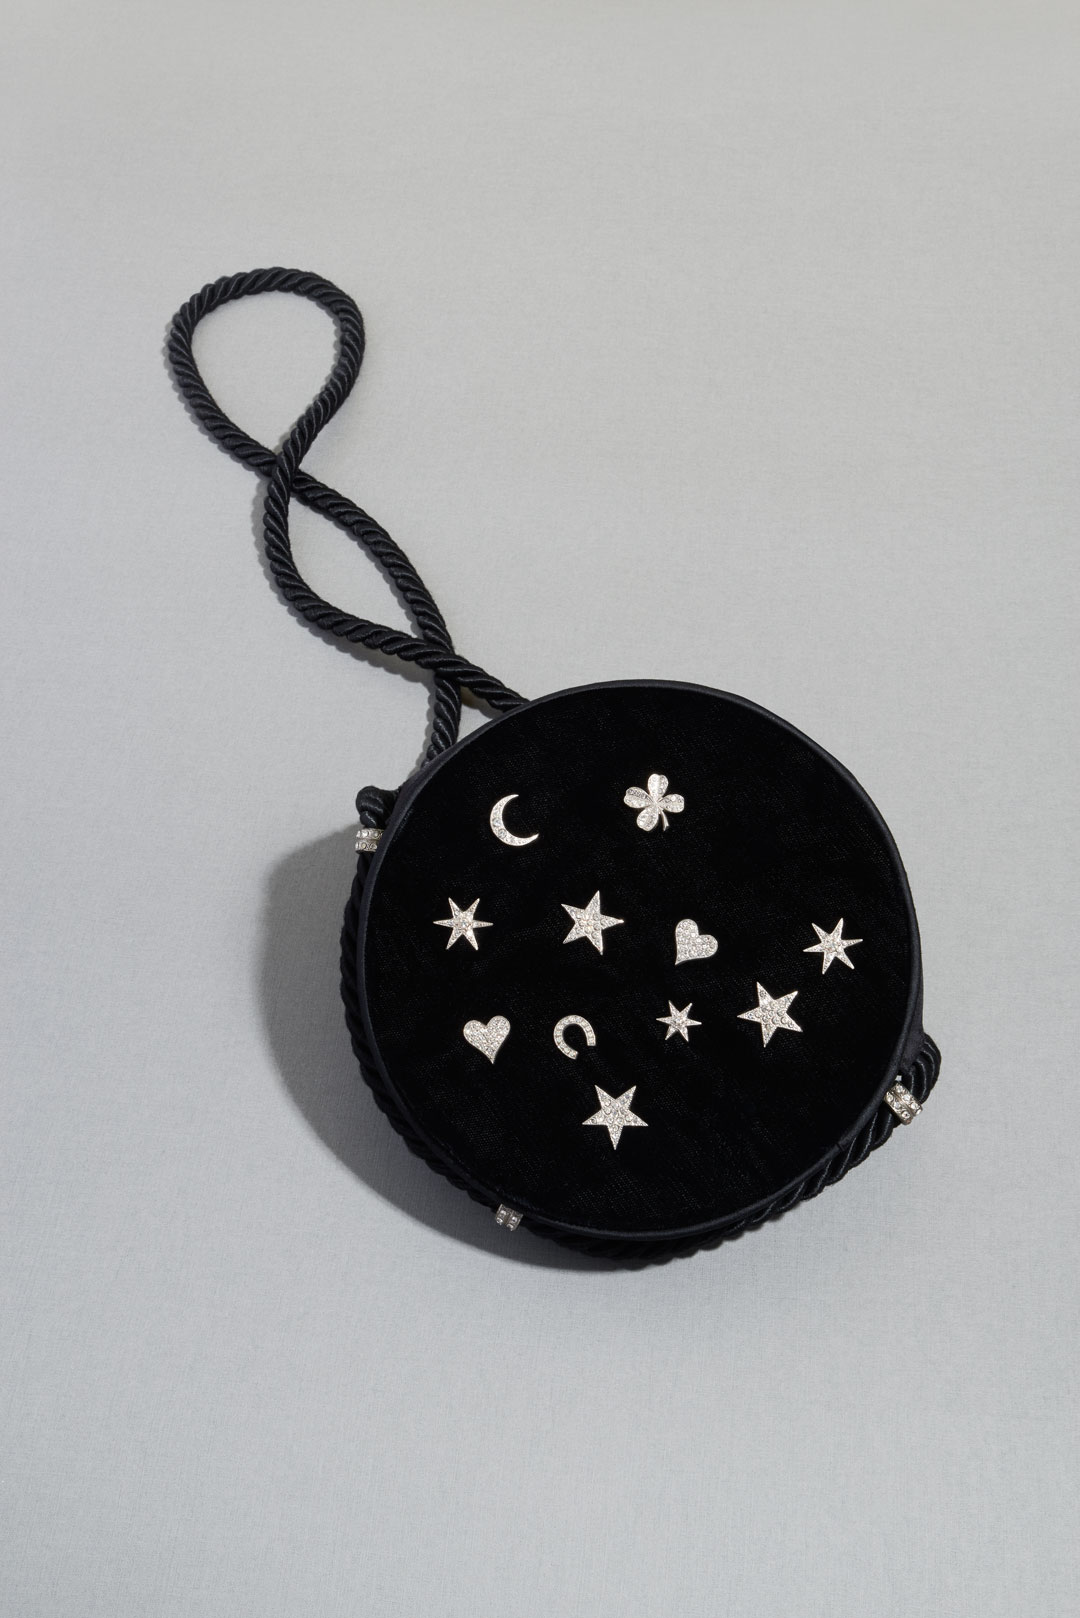 Black velvet tambourine bag with diamanté charms and a black cord strap (made by Renaud), about 1970. Photo by Lavanchy Matthieu